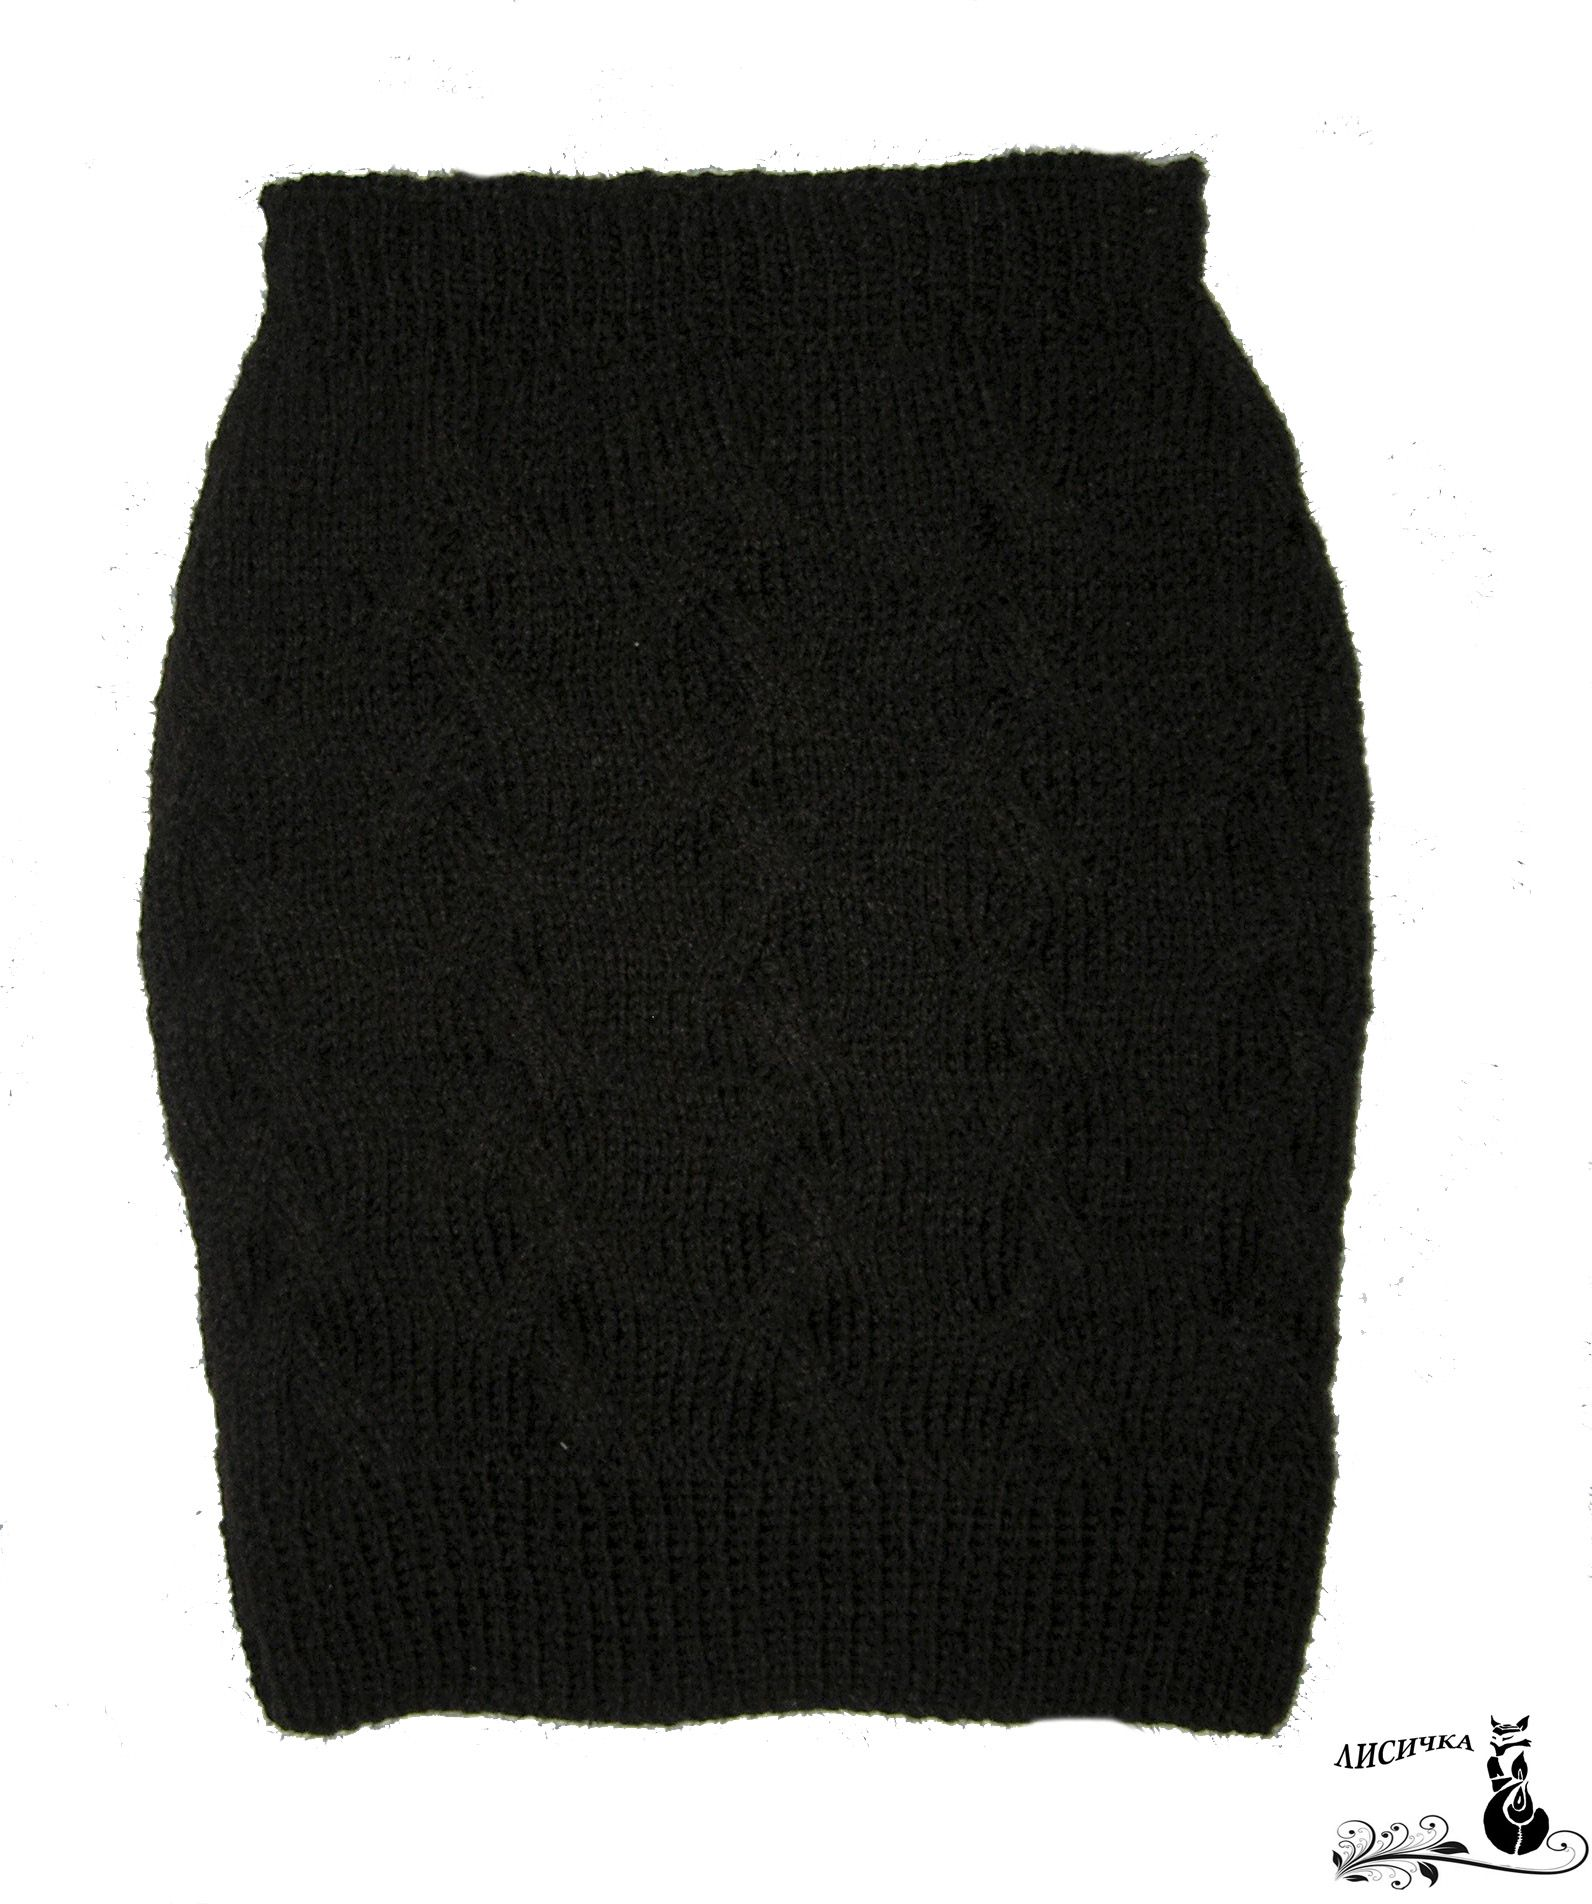 clothes skirt knittedcloth womencloth skirtwithbraids knittedskirt knit